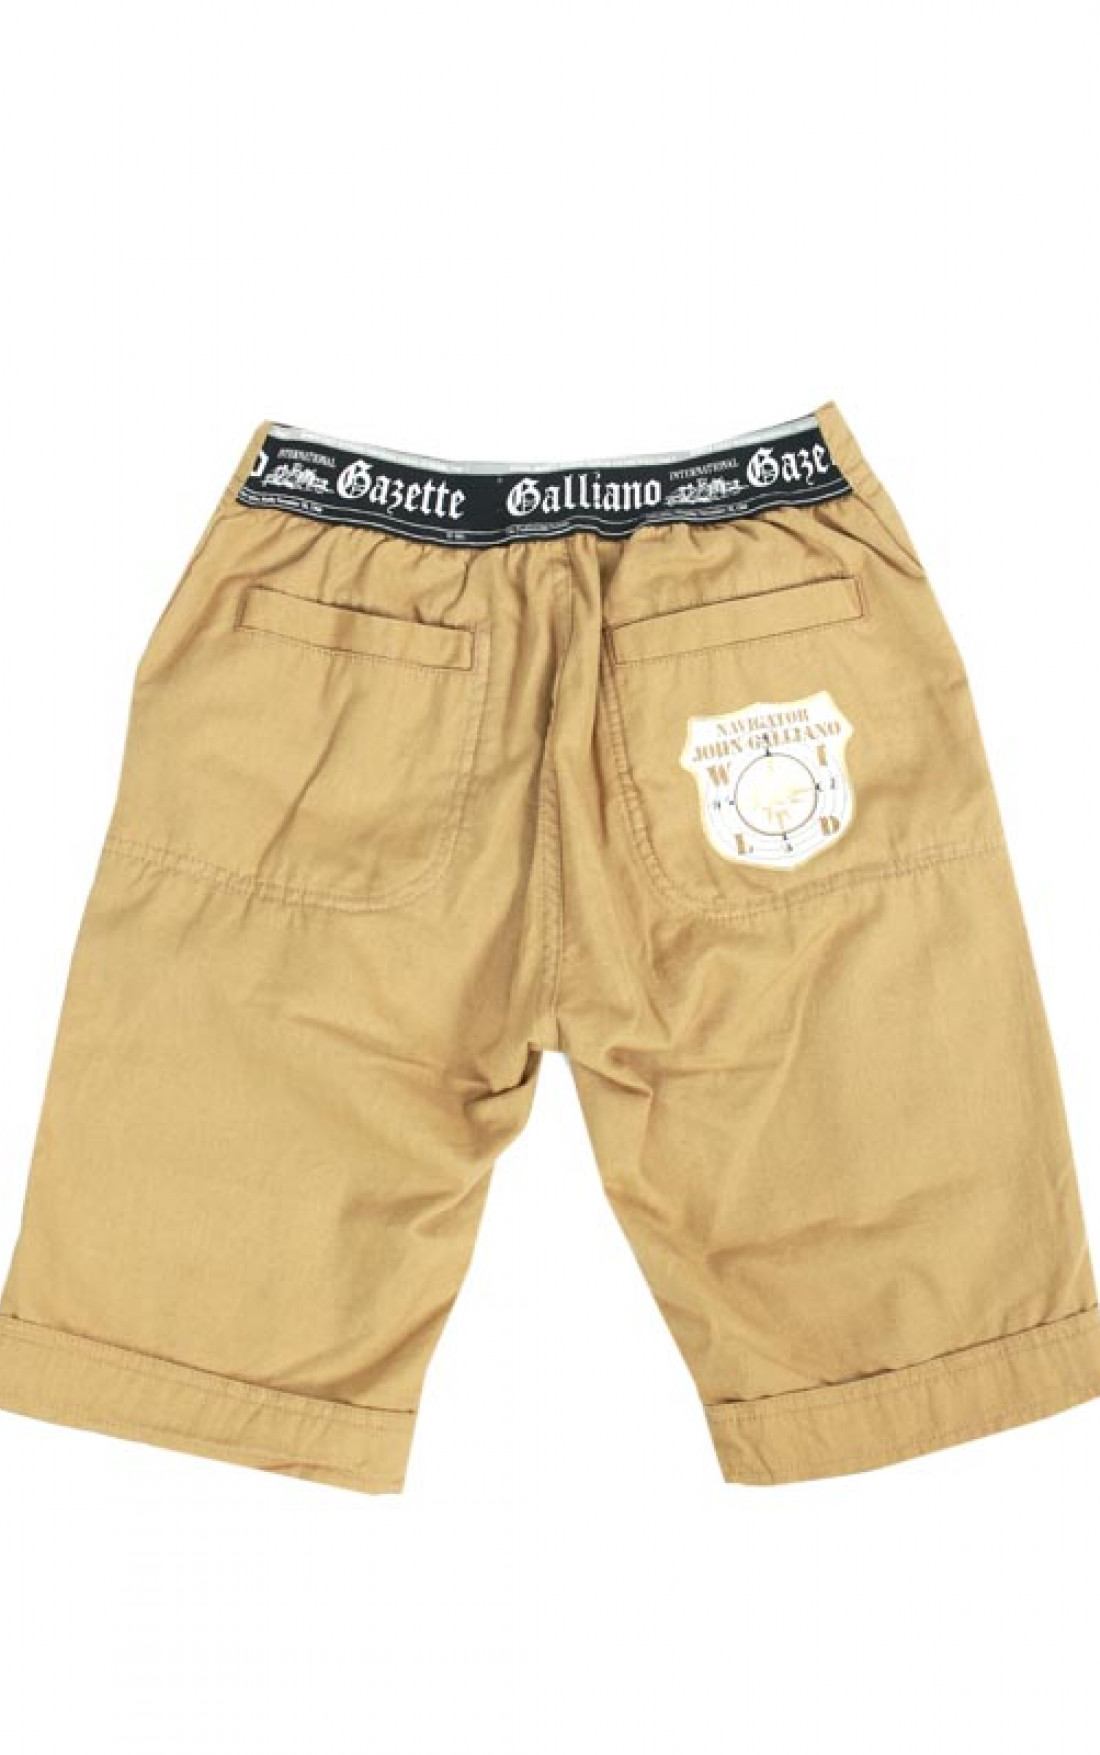 John-Galliano-Kids-Boys-Tan-Shorts-Boudi-UK-Back